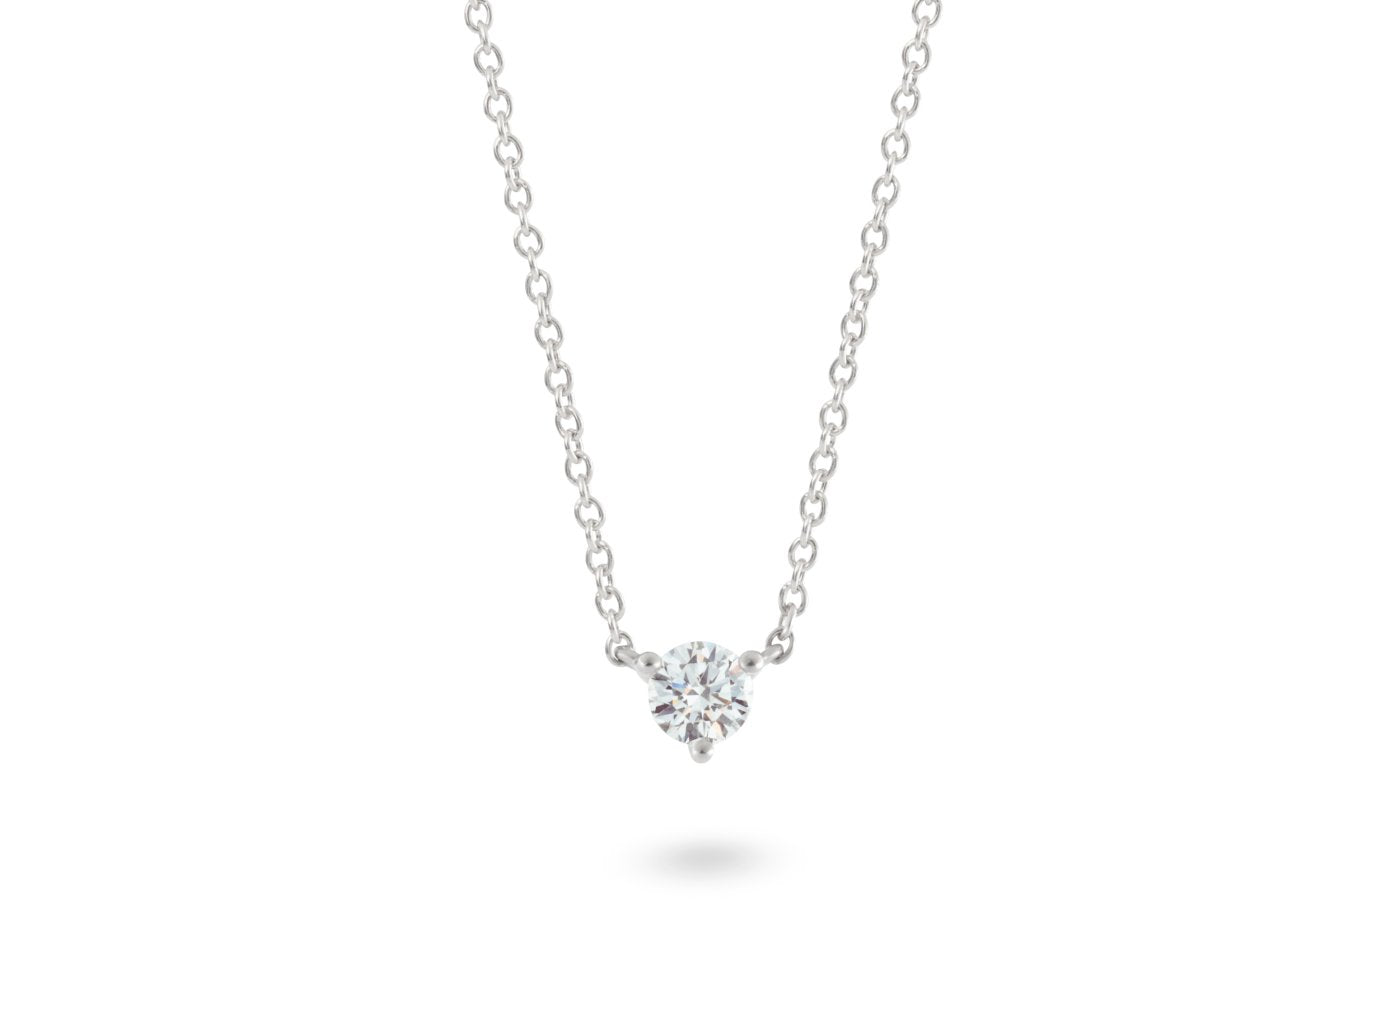 Front view of Solitaire 1/4 carat pendant with white diamond